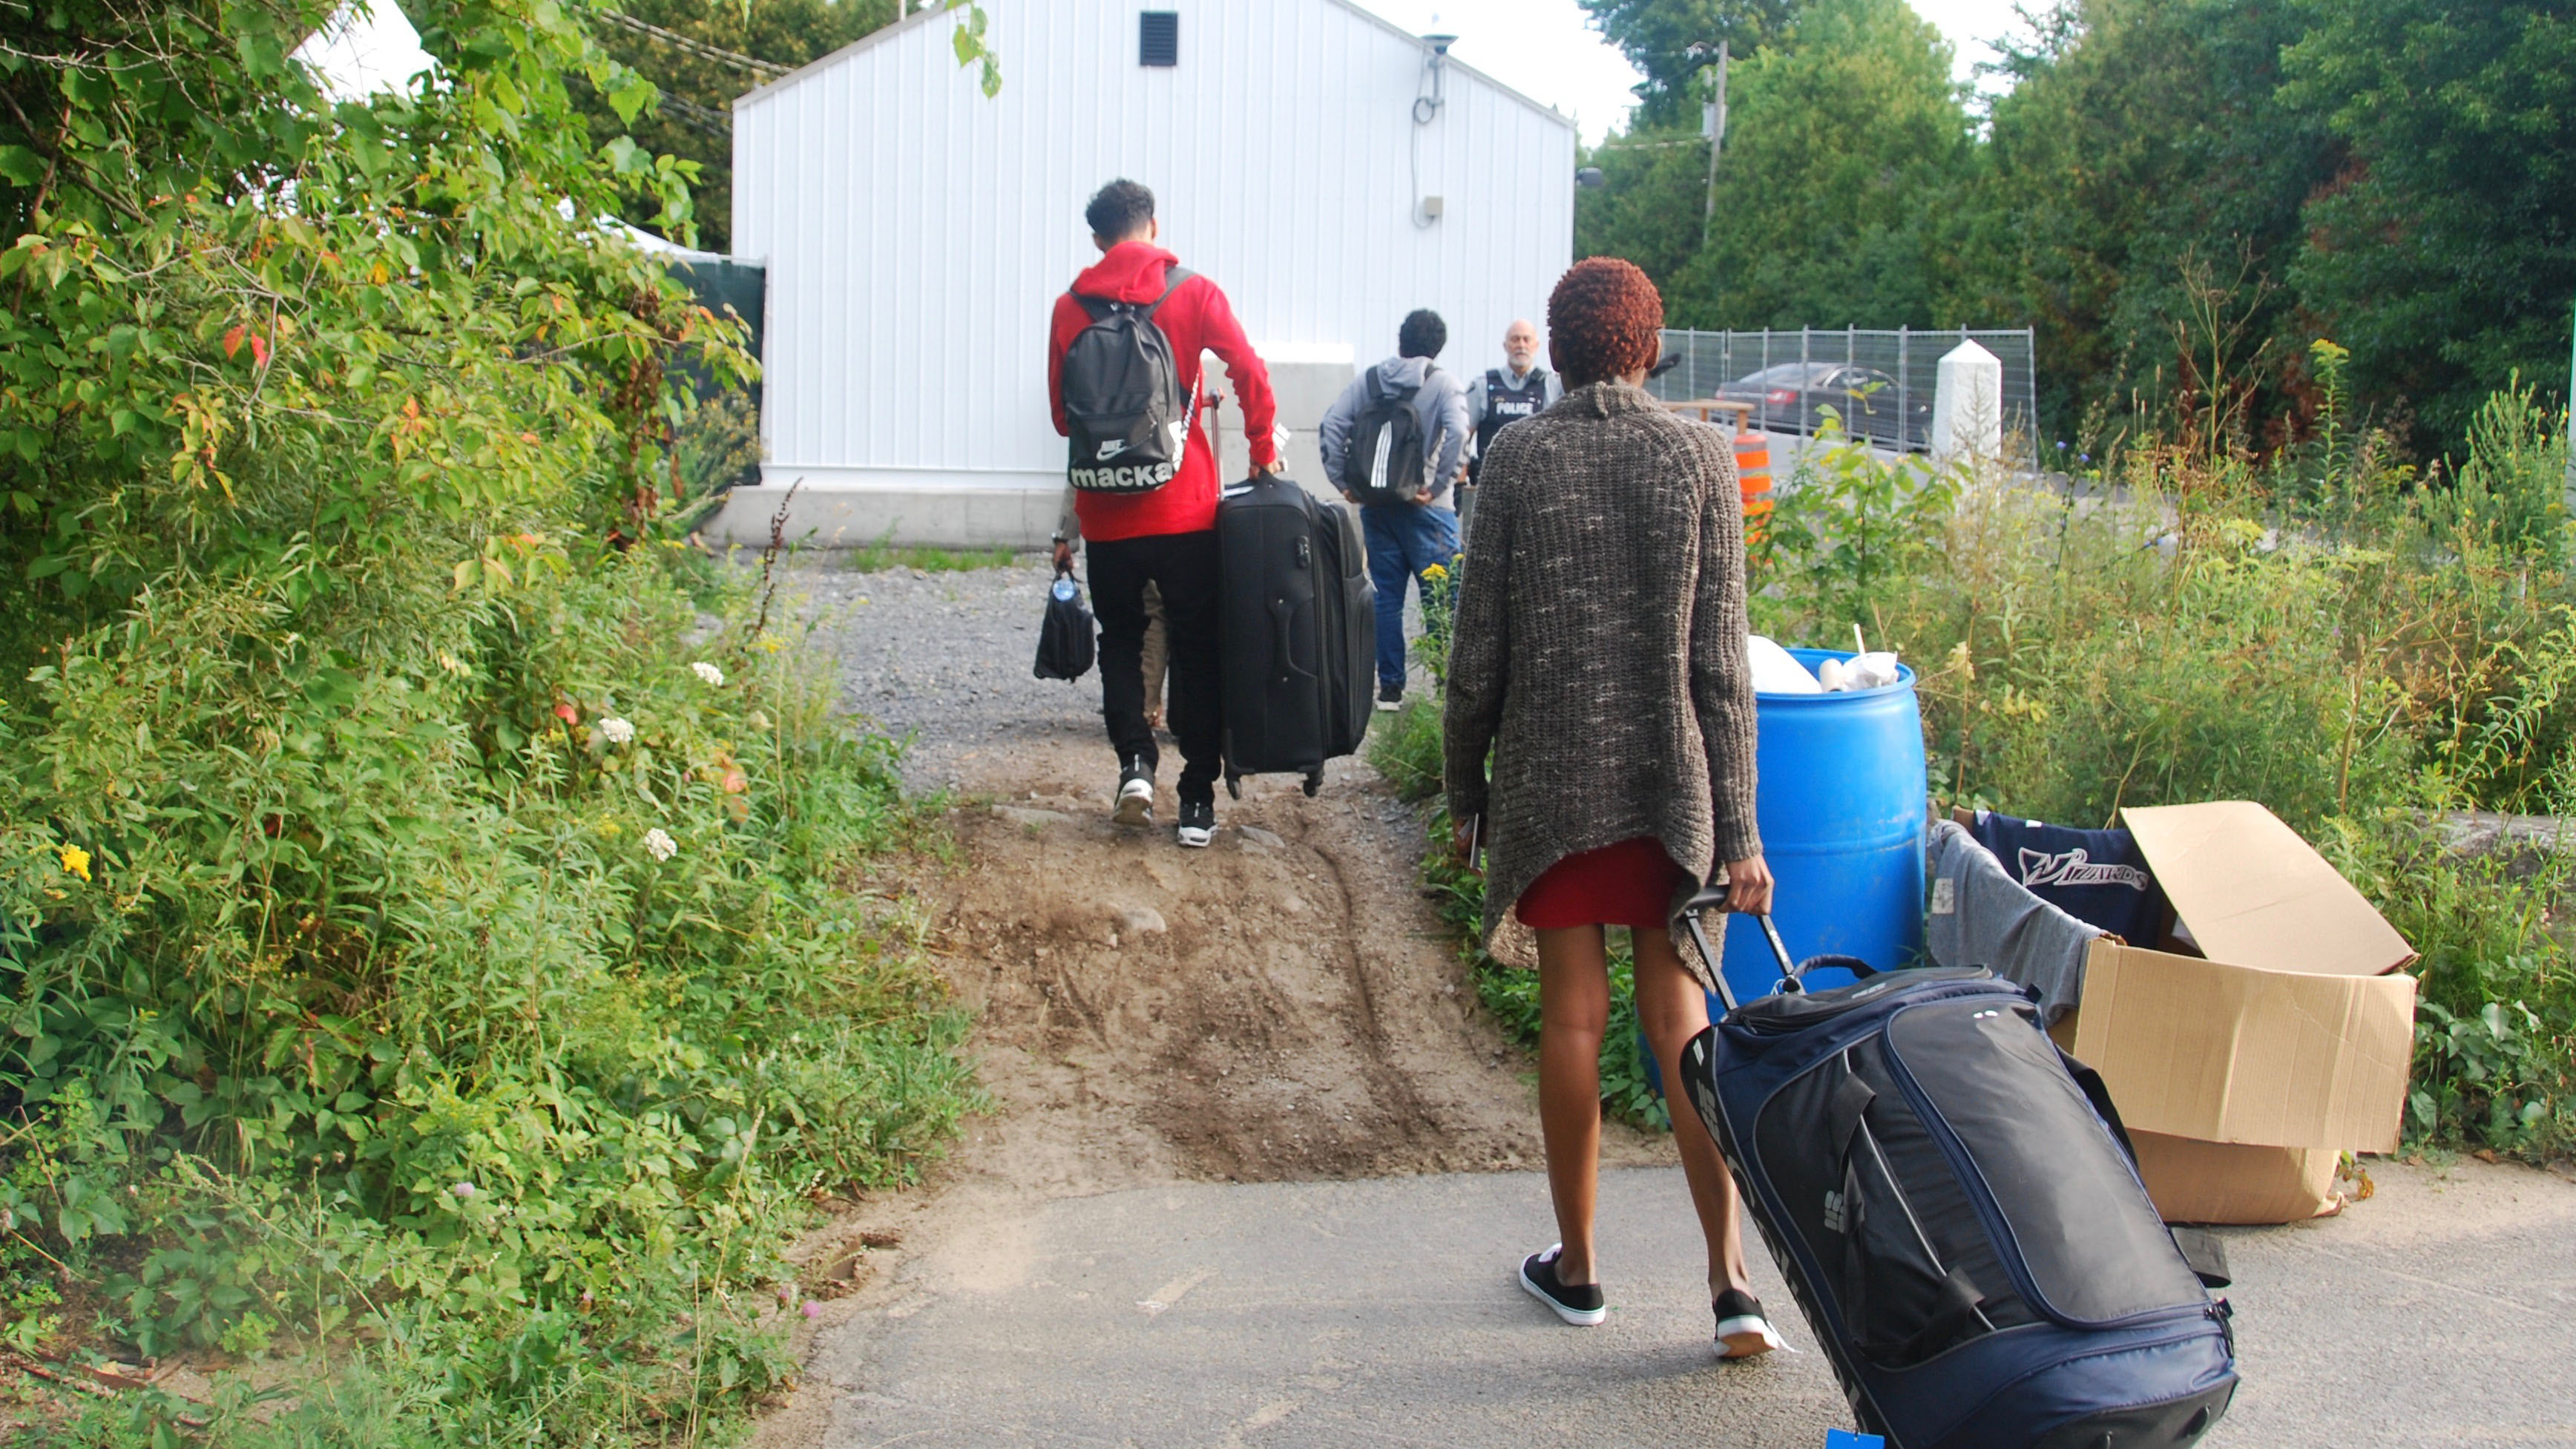 A woman drags a suitcase in the foreground. In the background, a police officer and three men dragging suitcases.